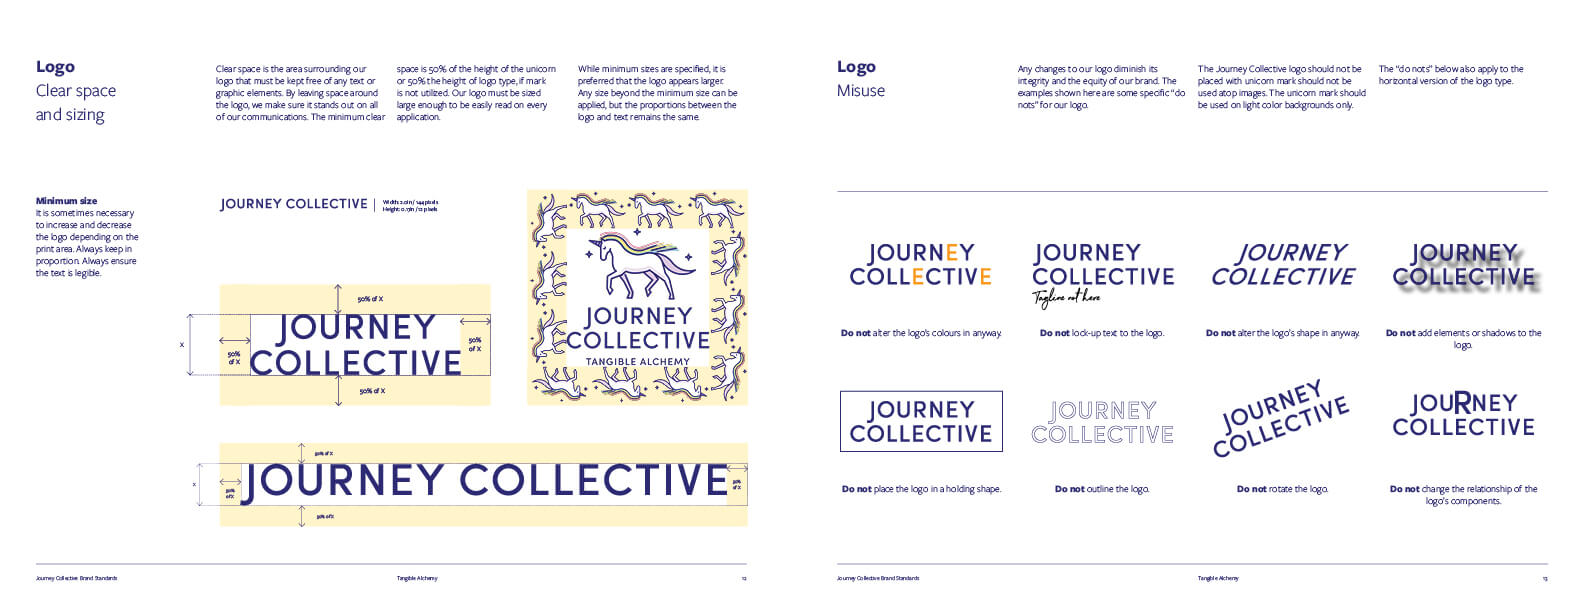 Journey-Collective-Brand-Guidelines7.jpg